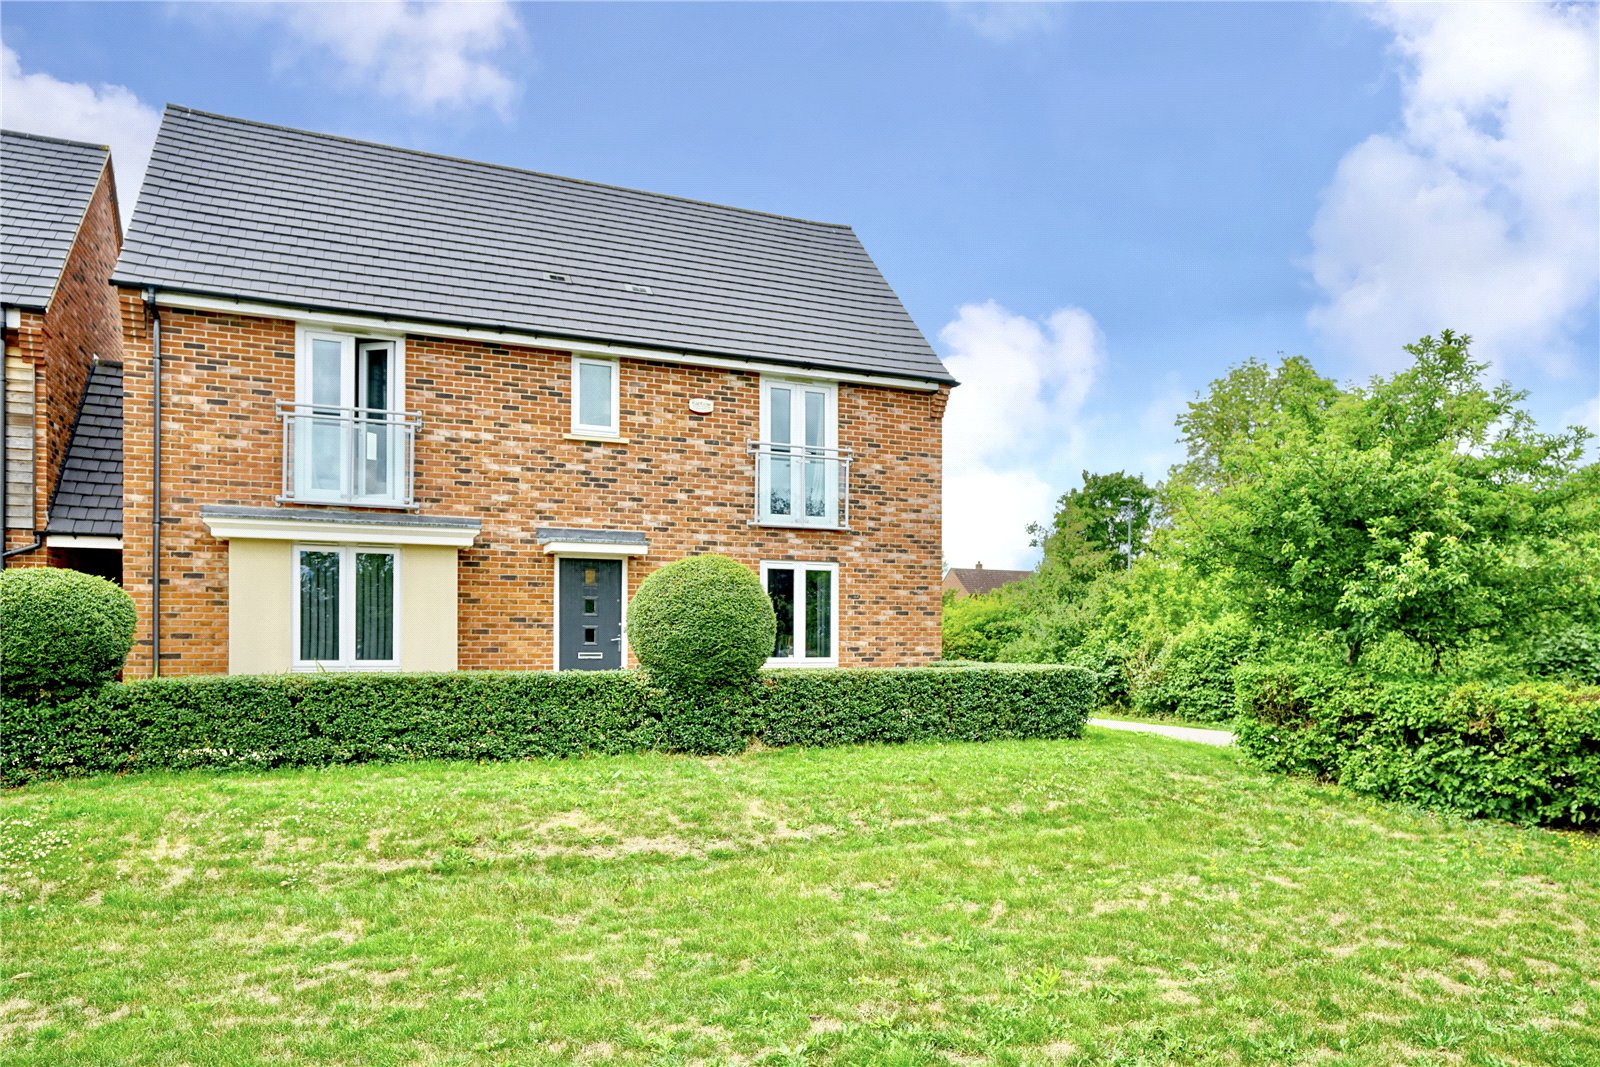 4 bed house for sale in St. Ives, PE27 6RX  - Property Image 1